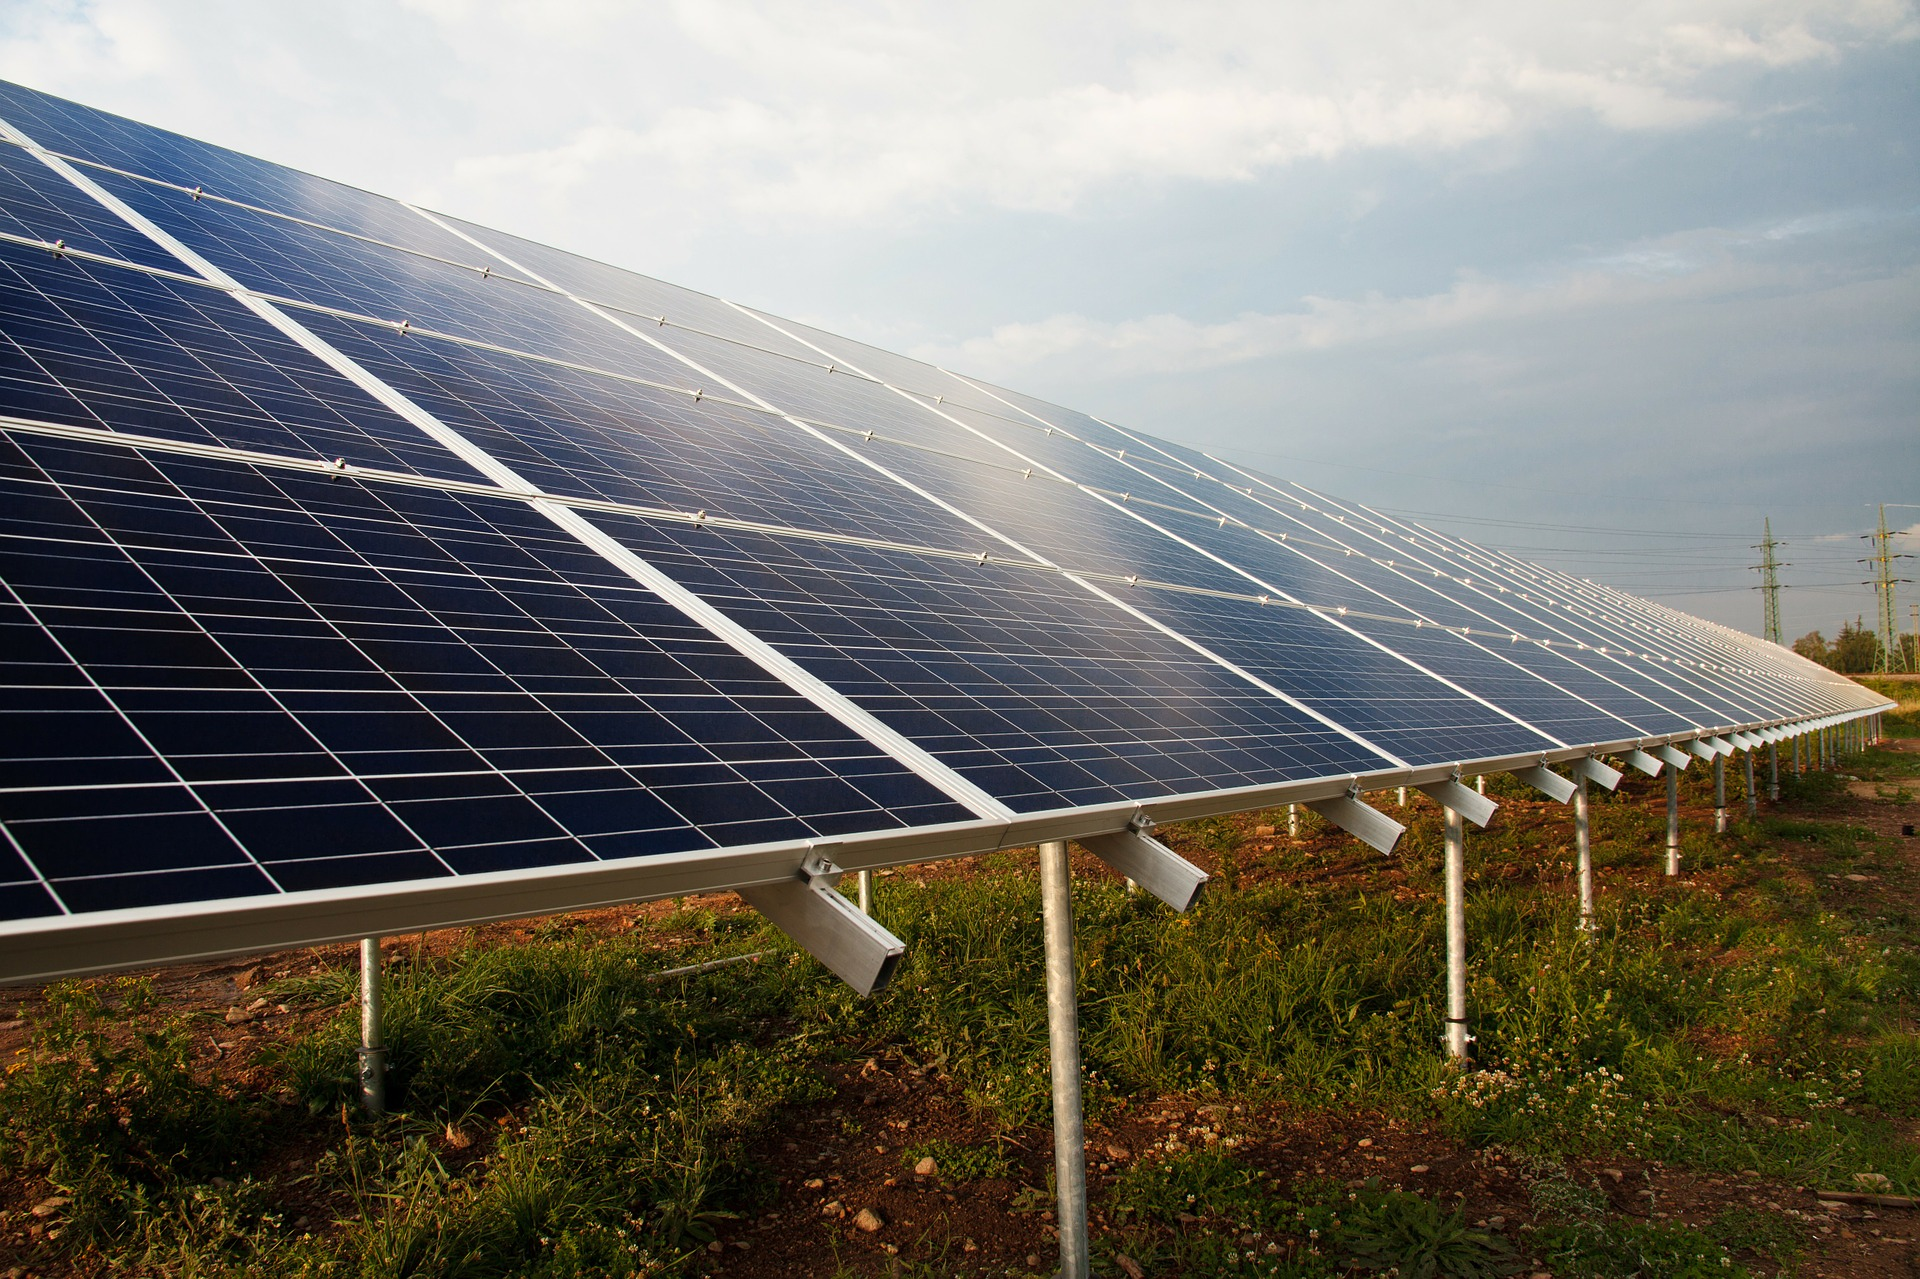 Ontario Homeowners Use New Solar Program To Go Solar At No Cost. Here's How…